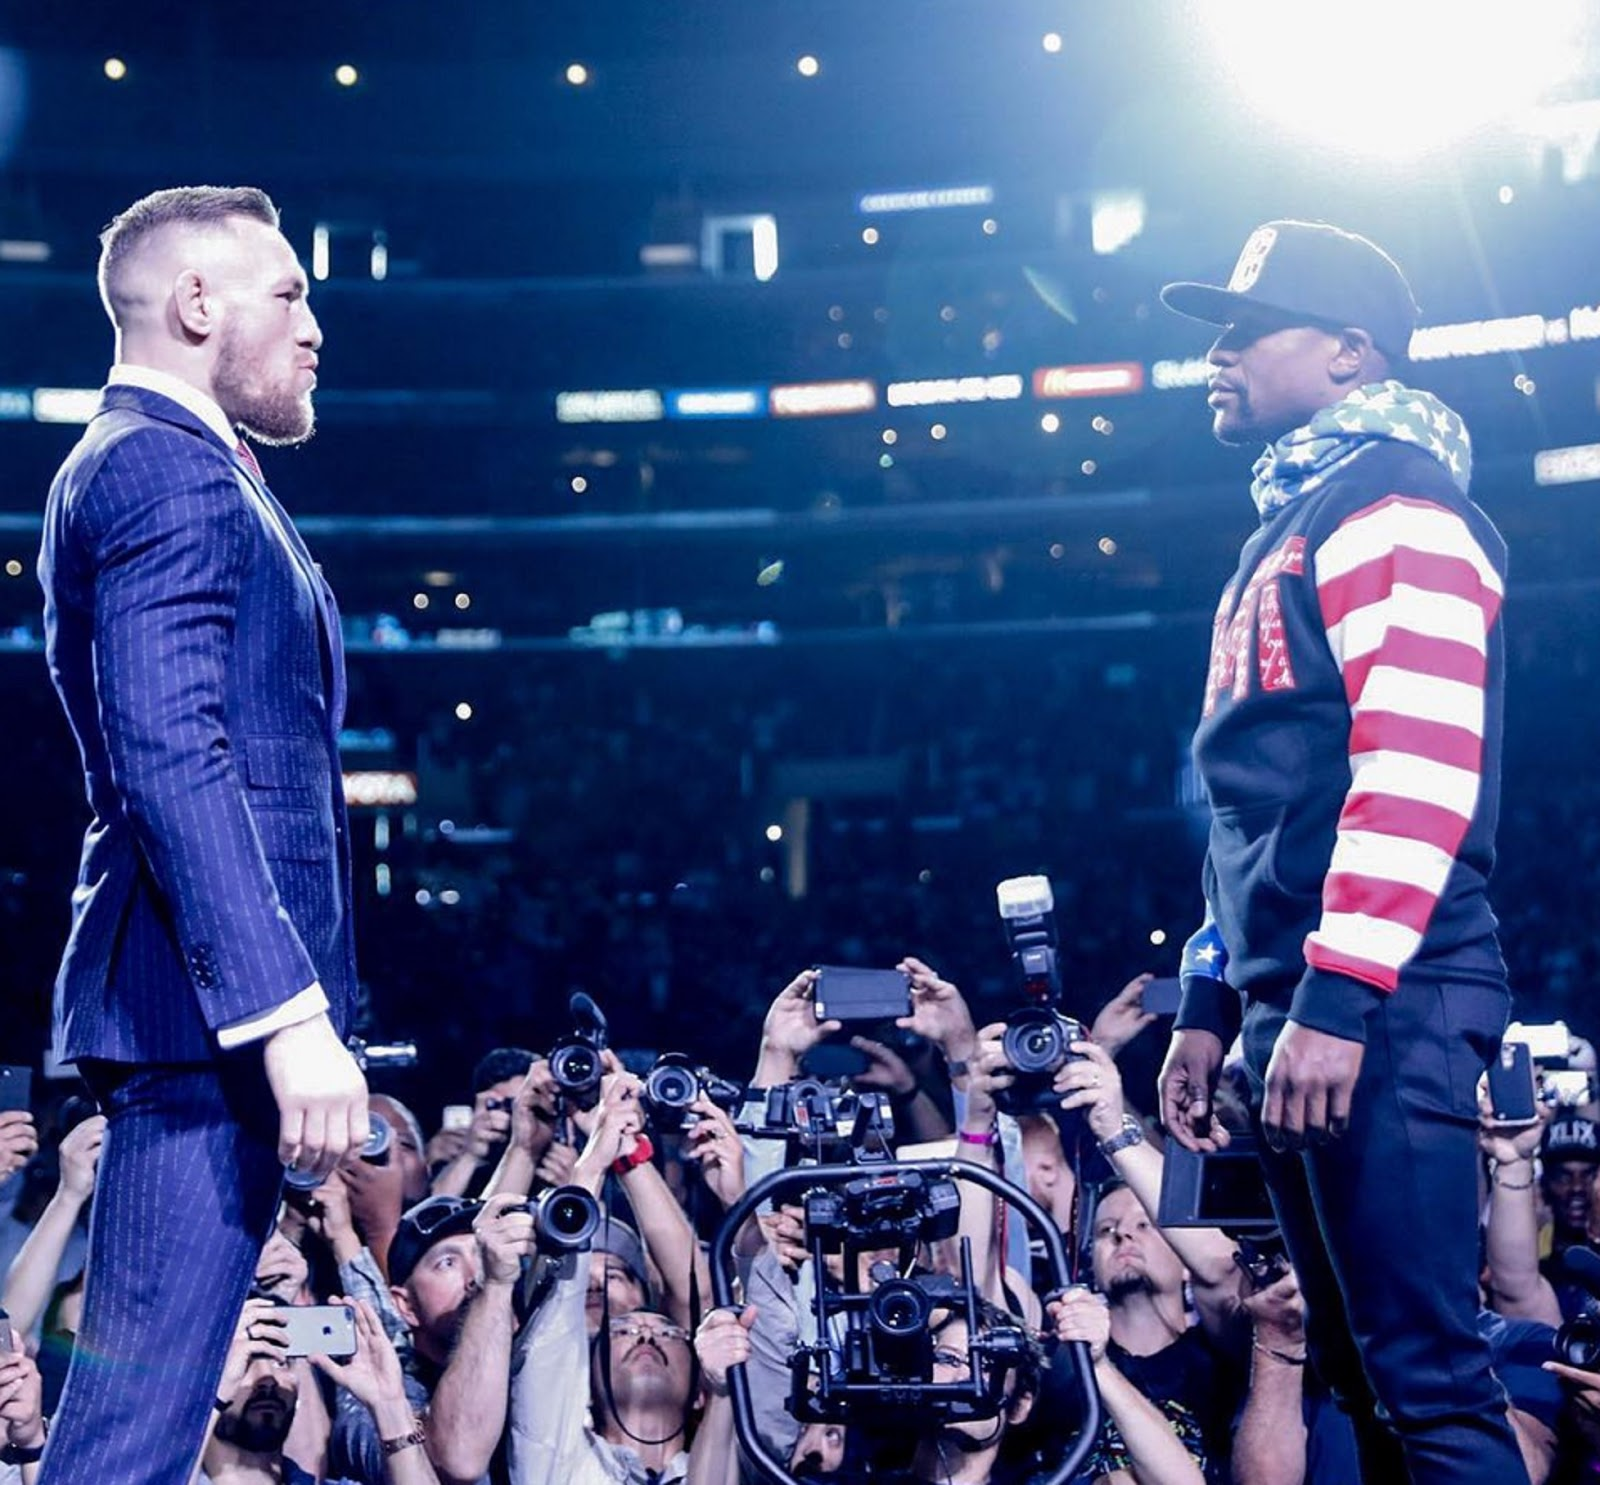 FLOYD MAYWEATHER VS. CONOR MCGREGOR 14